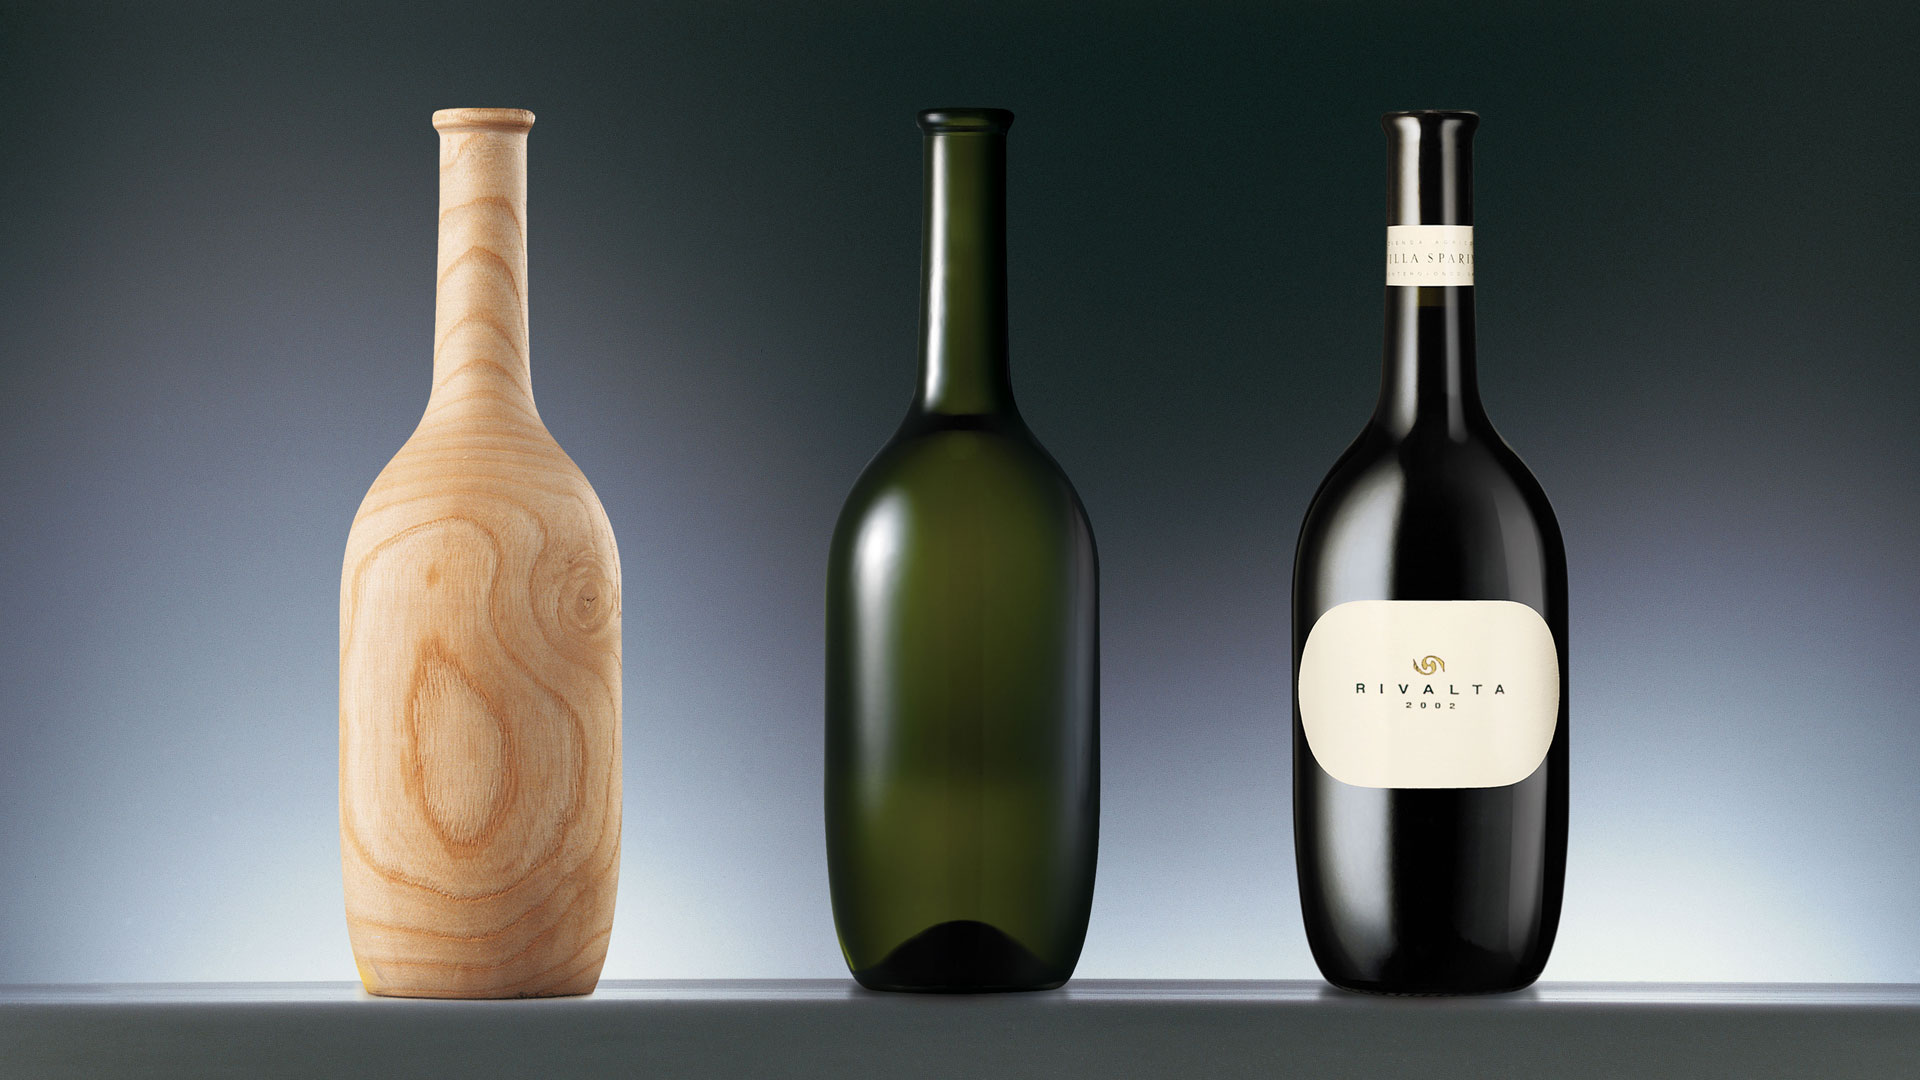 Villa Sparina bottle design